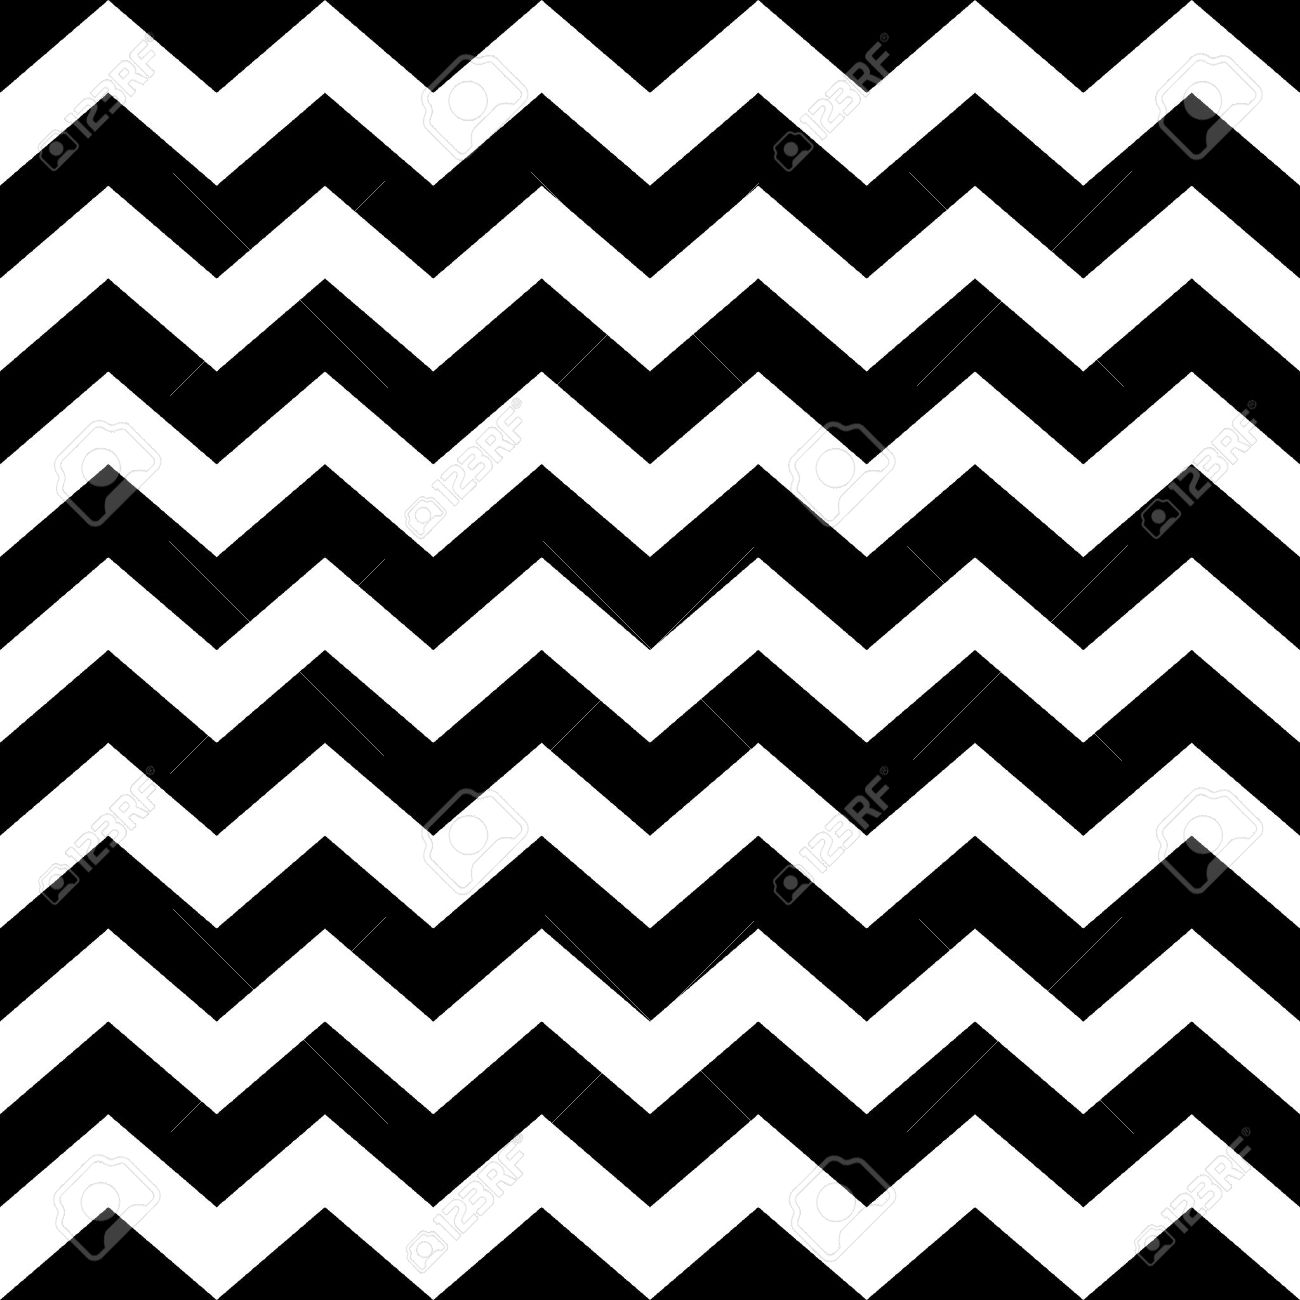 seamless zig zag pattern in black and white abstract background